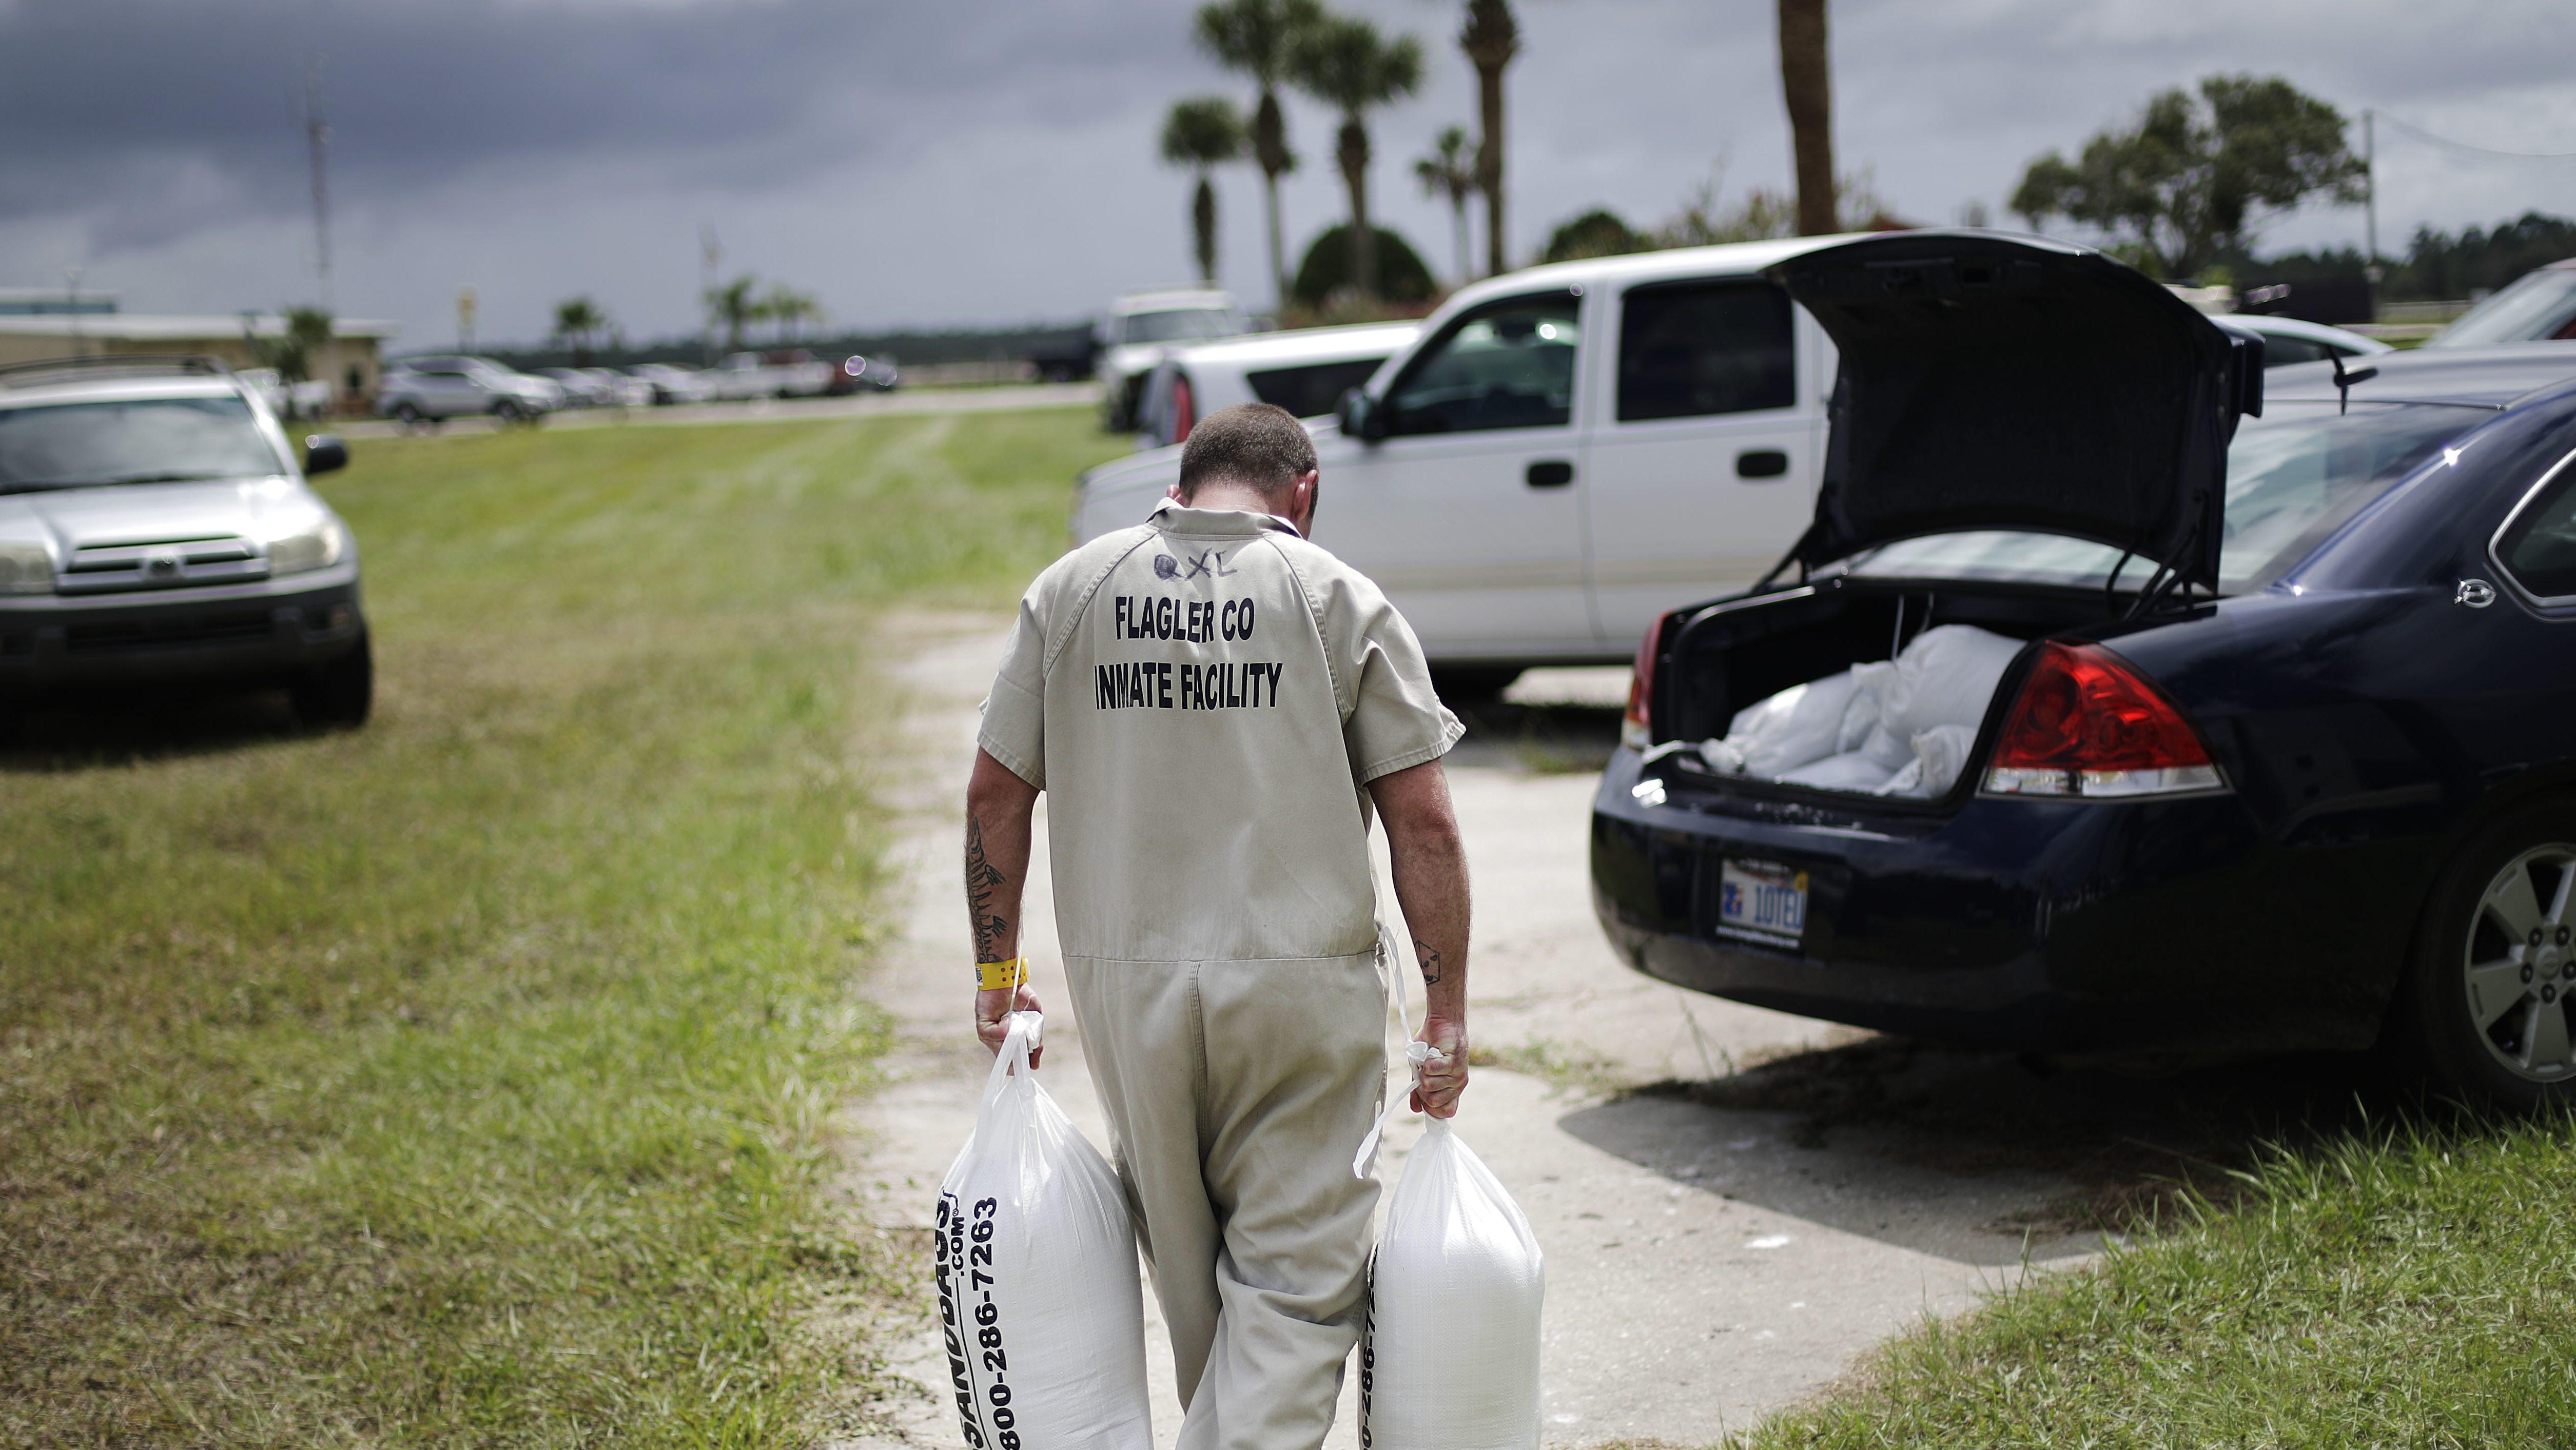 Inmate Eric Sumner carries sandbags for a resident at a makeshift filling station provided by the county as protection ahead of Hurricane Irma in Palm Coast, Fla., Friday, Sept. 8, 2017. (AP Photo/David Goldman)